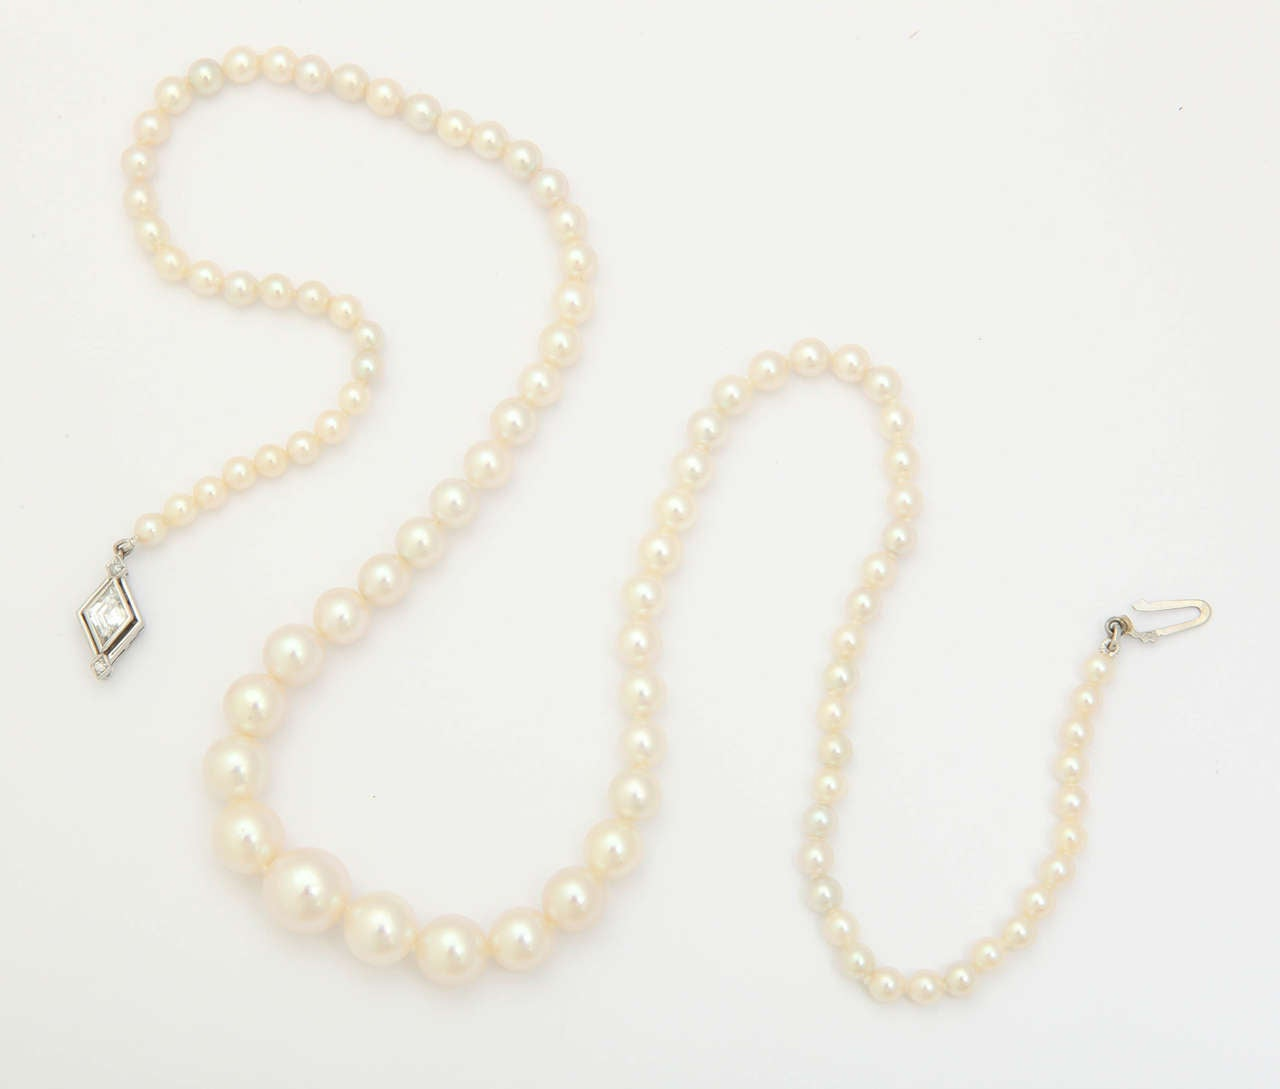 Graduated Cultured Pearl Necklace with Diamond Gold Clasp For Sale 2